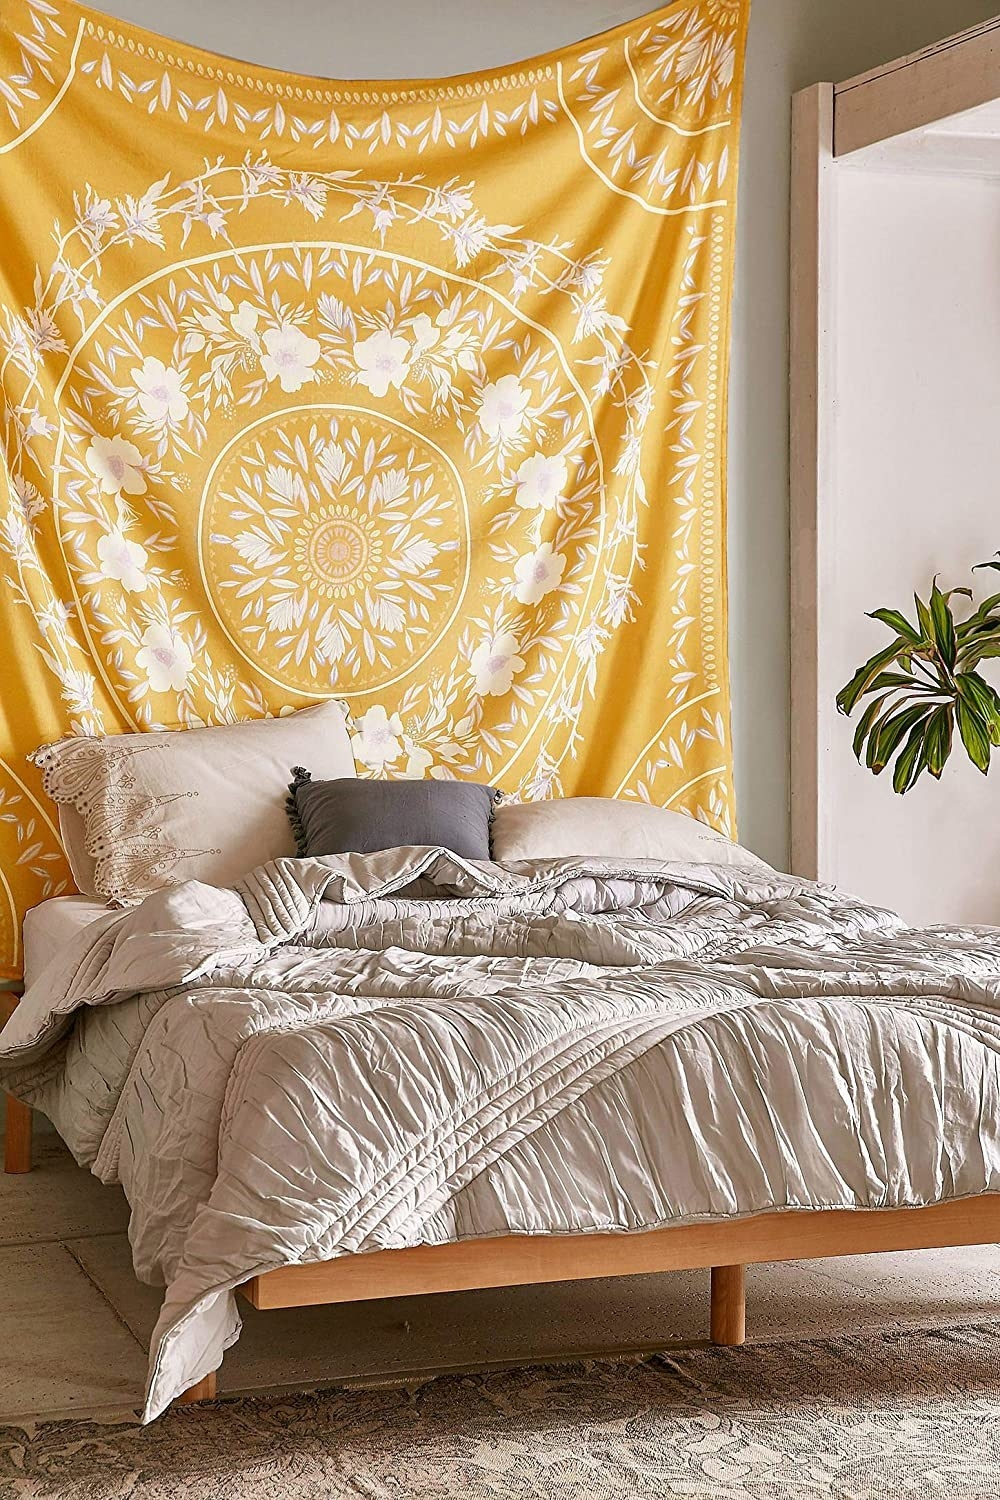 Large yellow tapestry with floral pattern